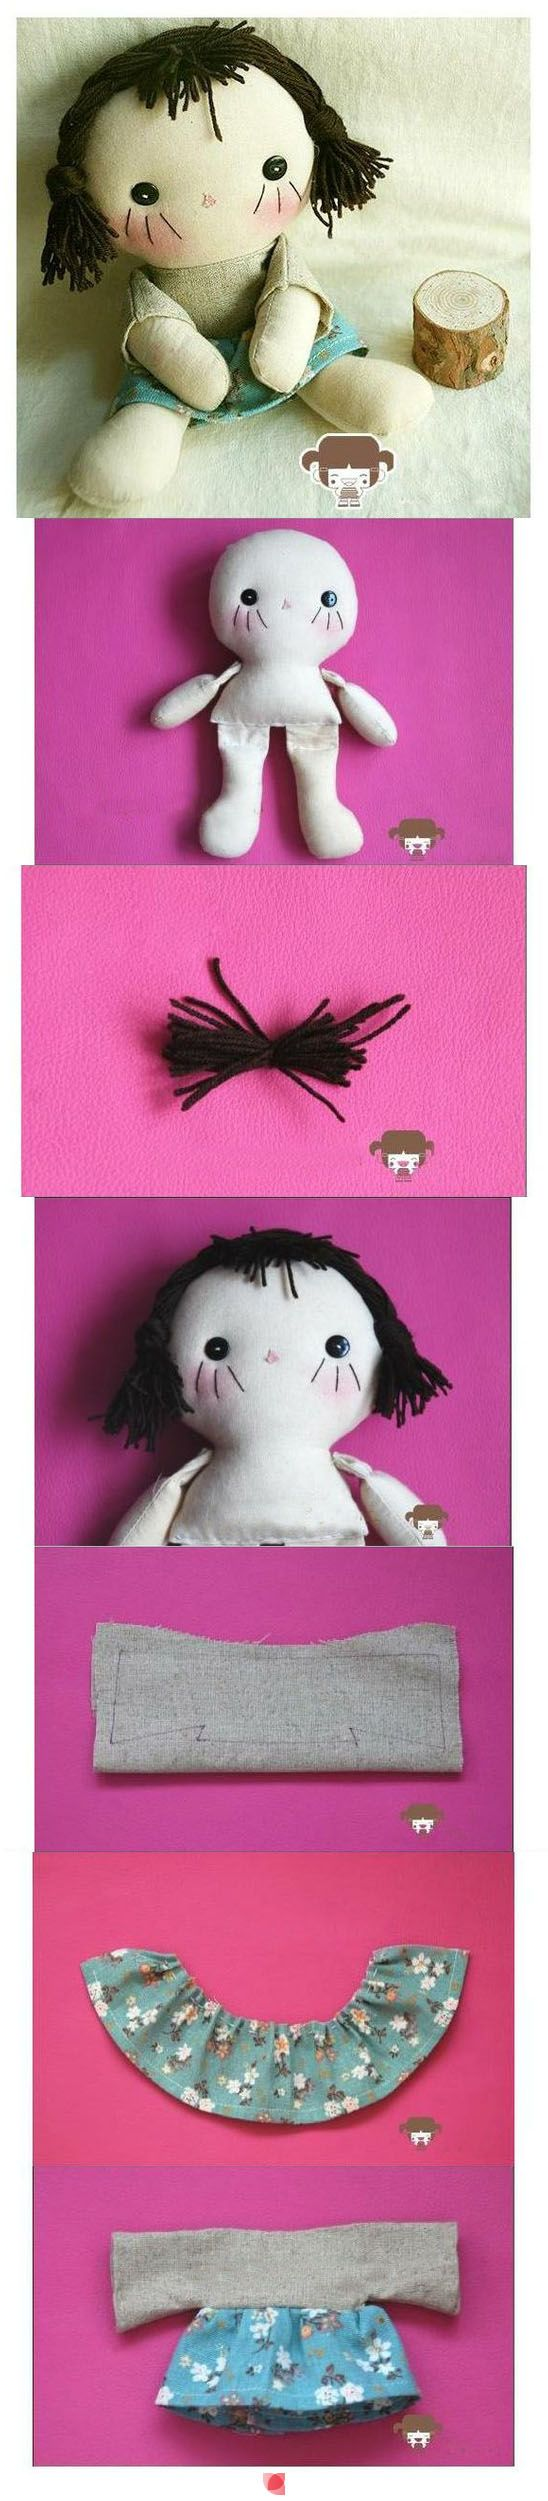 i love this doll....i have the pattern, too! now i want to create one as well!...